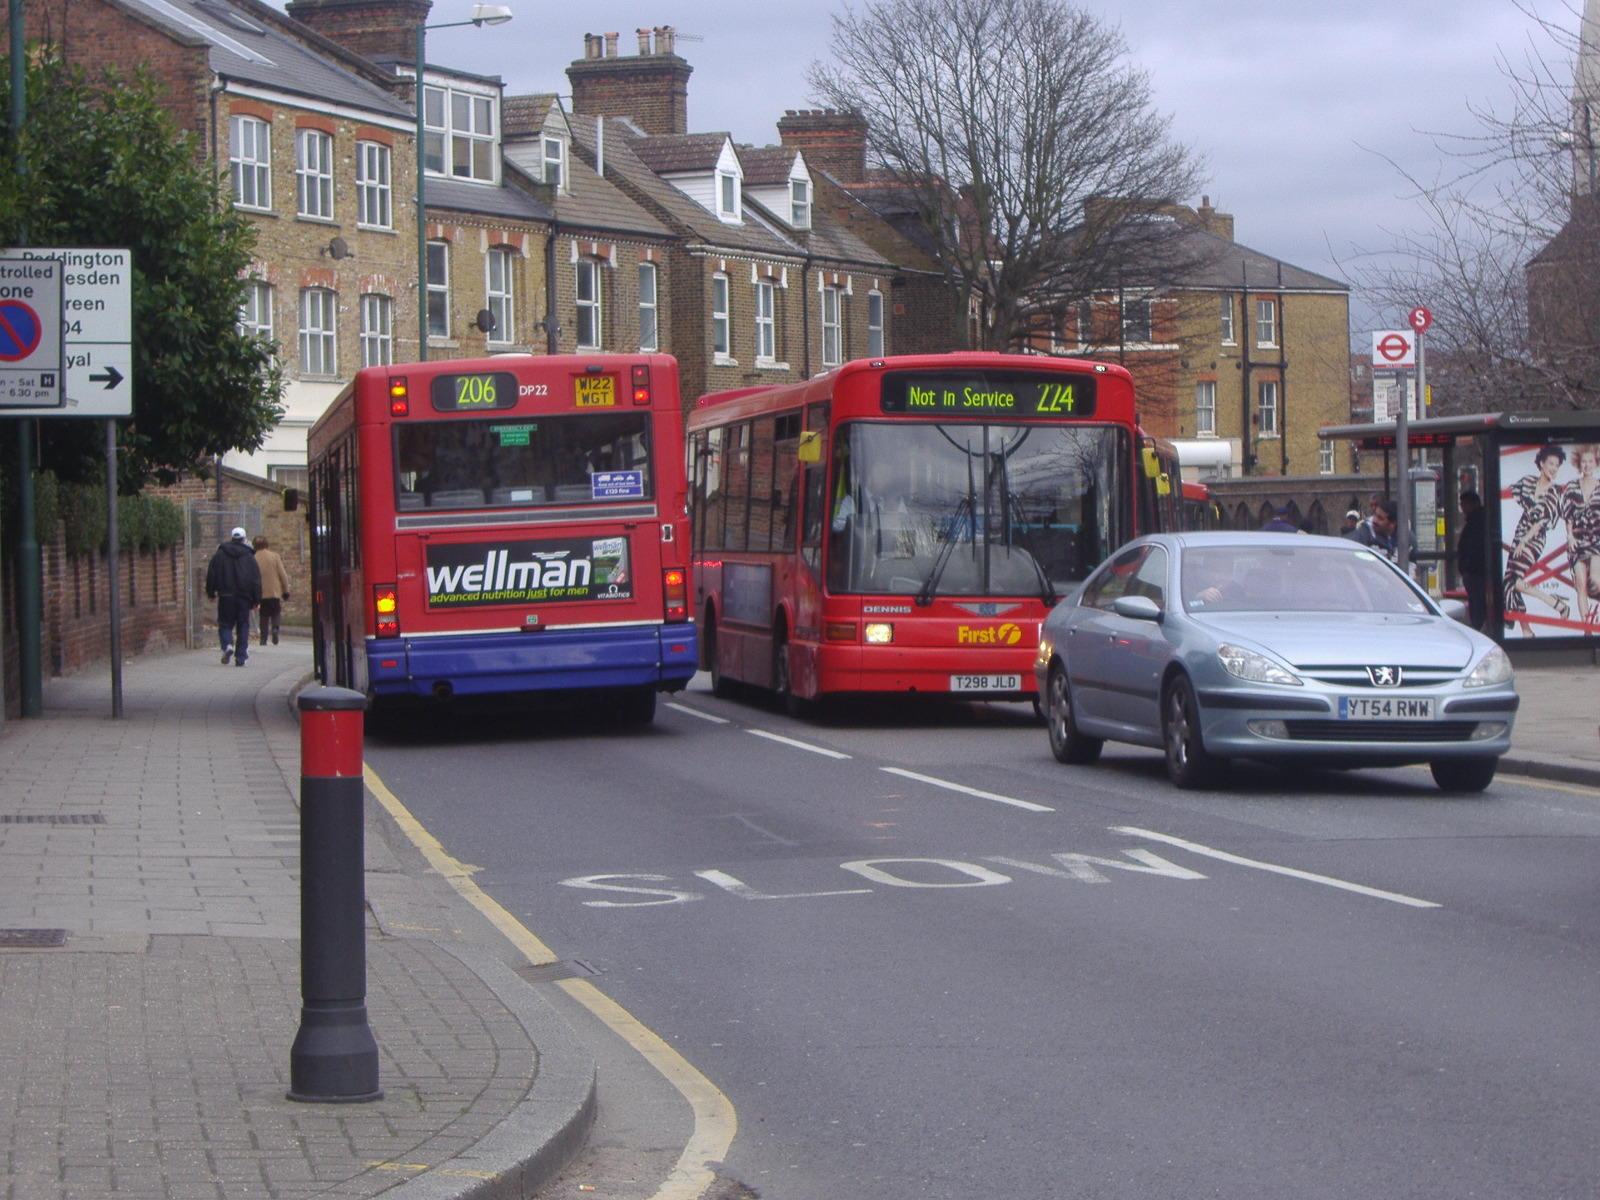 file:london buses route 224 and 206 acton lane - wikimedia commons